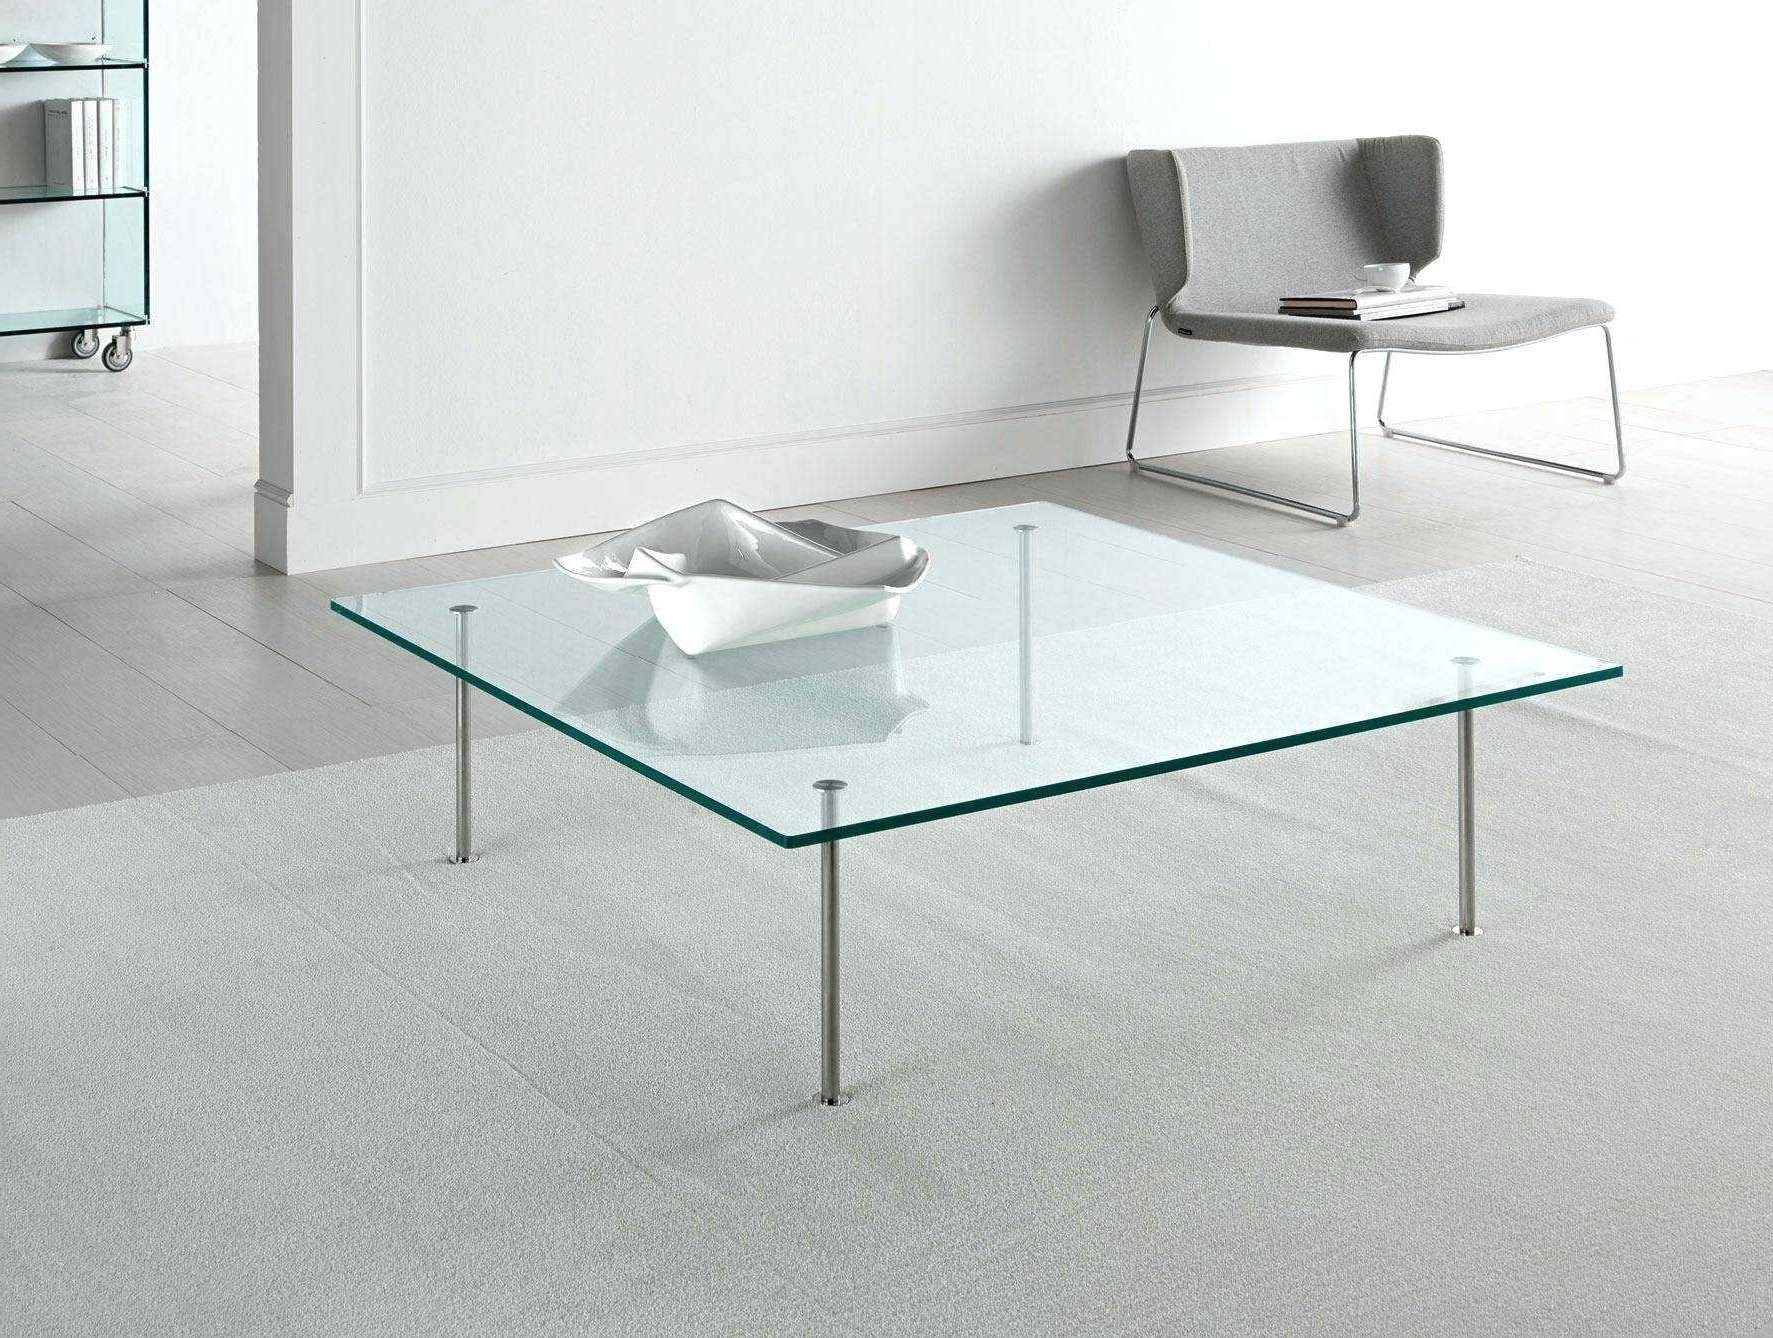 All Glass Coffee Tables – Coffee Tables Fashionable Inspiration Regarding Favorite All Glass Coffee Tables (View 5 of 20)